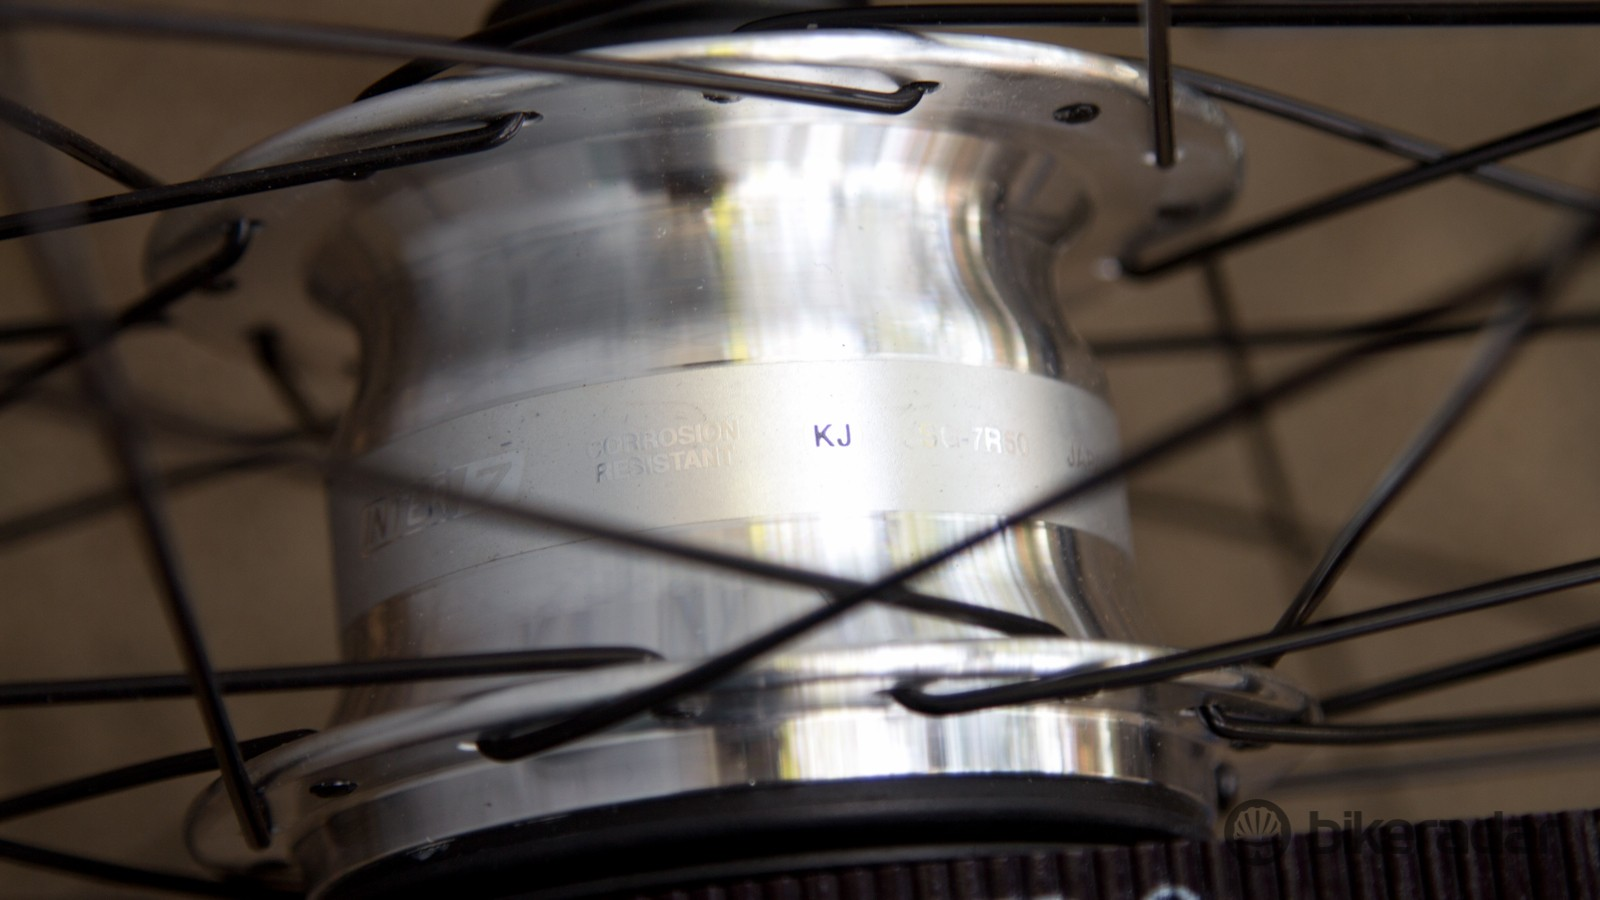 Seven gears are hidden inside this rear hub. The downsides? Internal geared hubs add weight, offer limited gear ranges and have additional resistance